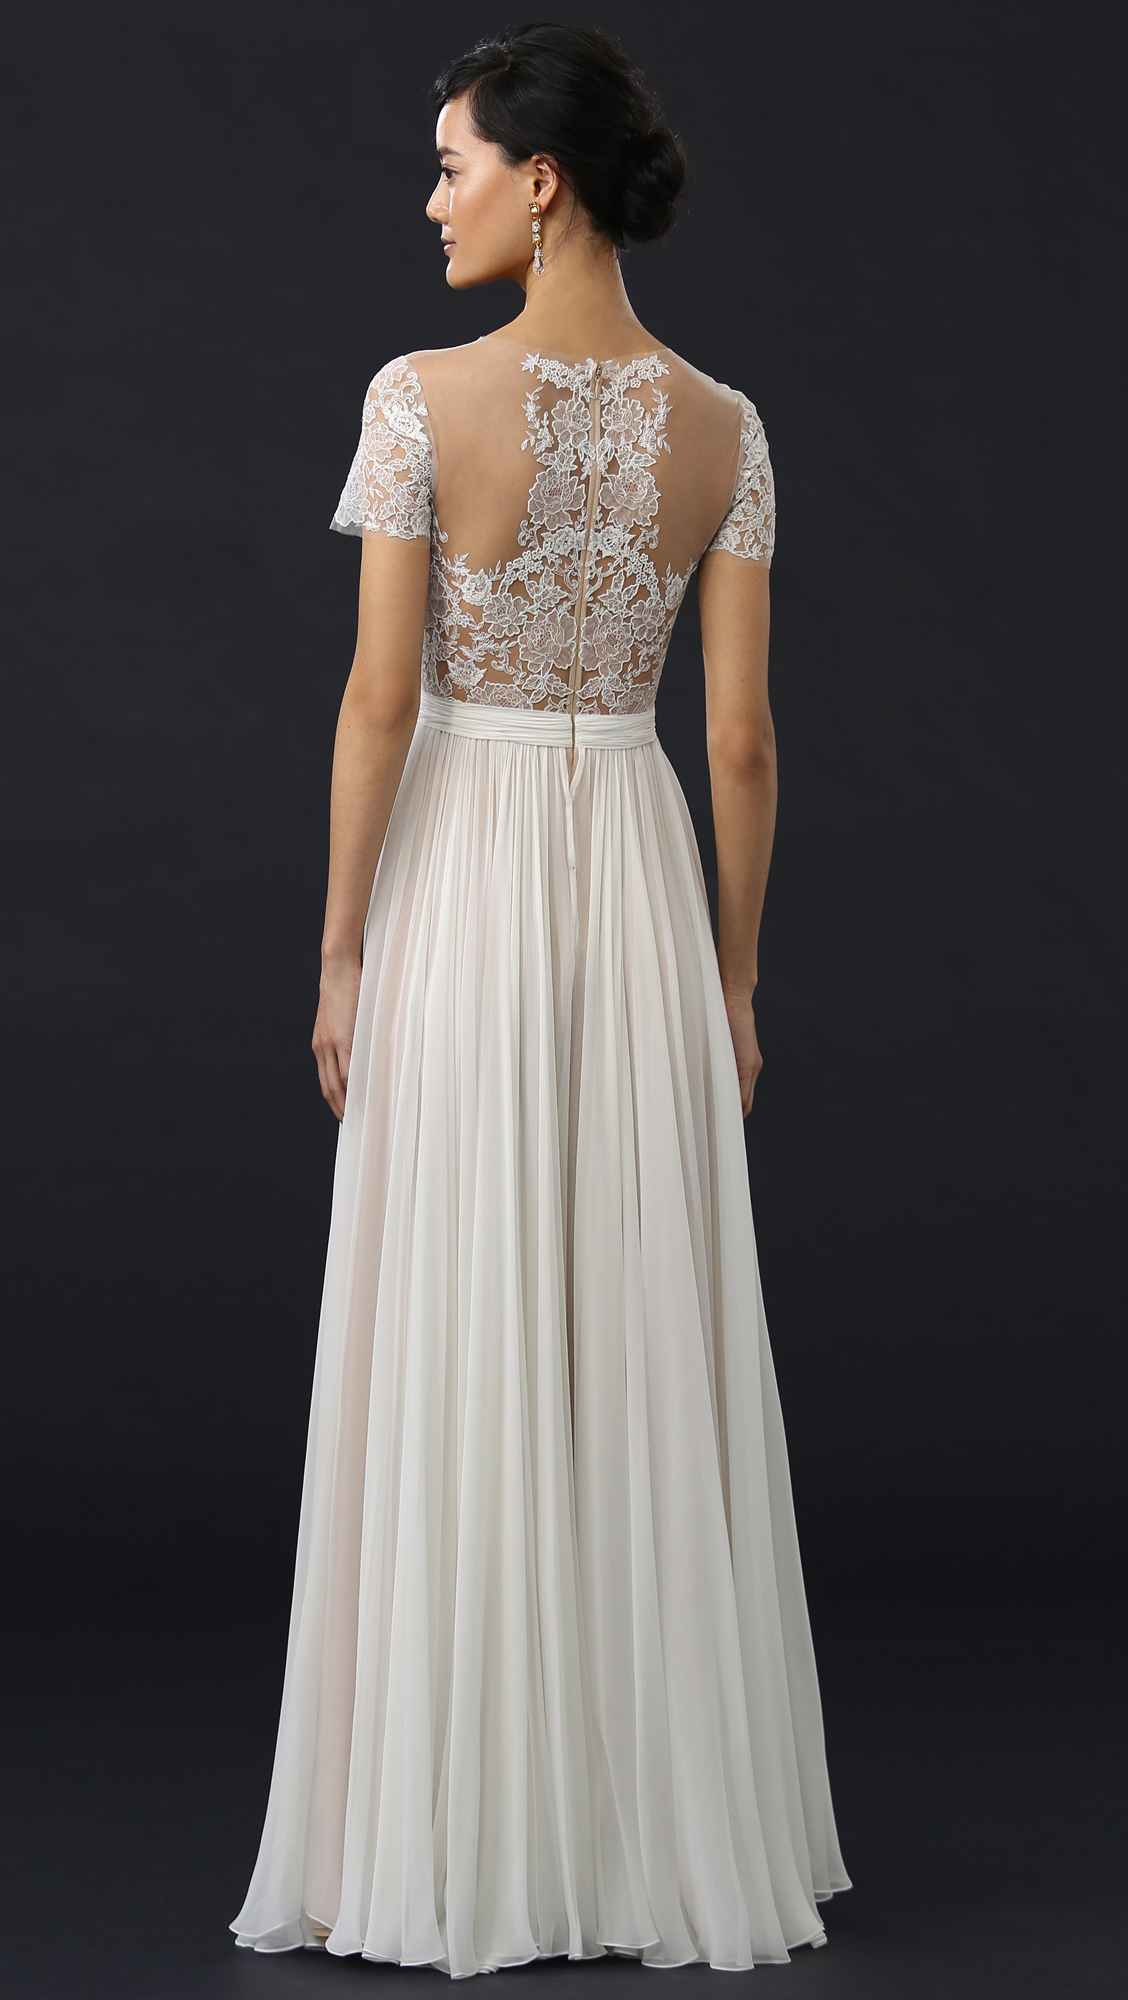 Dream Gowns Panama City Fl - Best Seller Dress and Gown Review